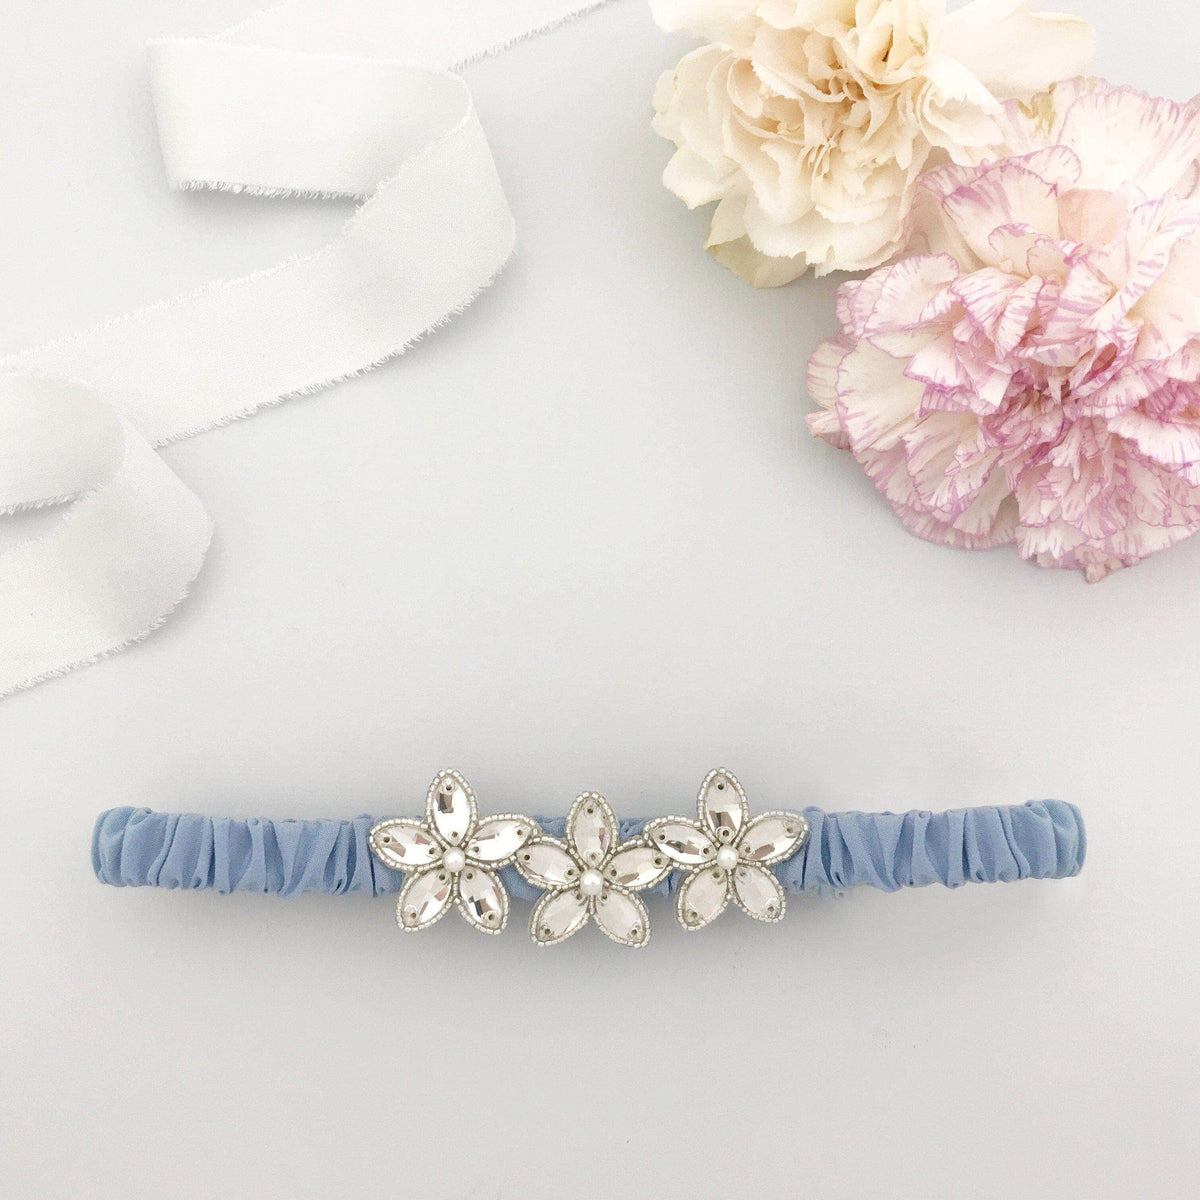 Wedding Garter Cornflower blue / Extra small 35-40cm (13.5-16 inch) Embellished silk wedding garter (various colours) - 'Joi'